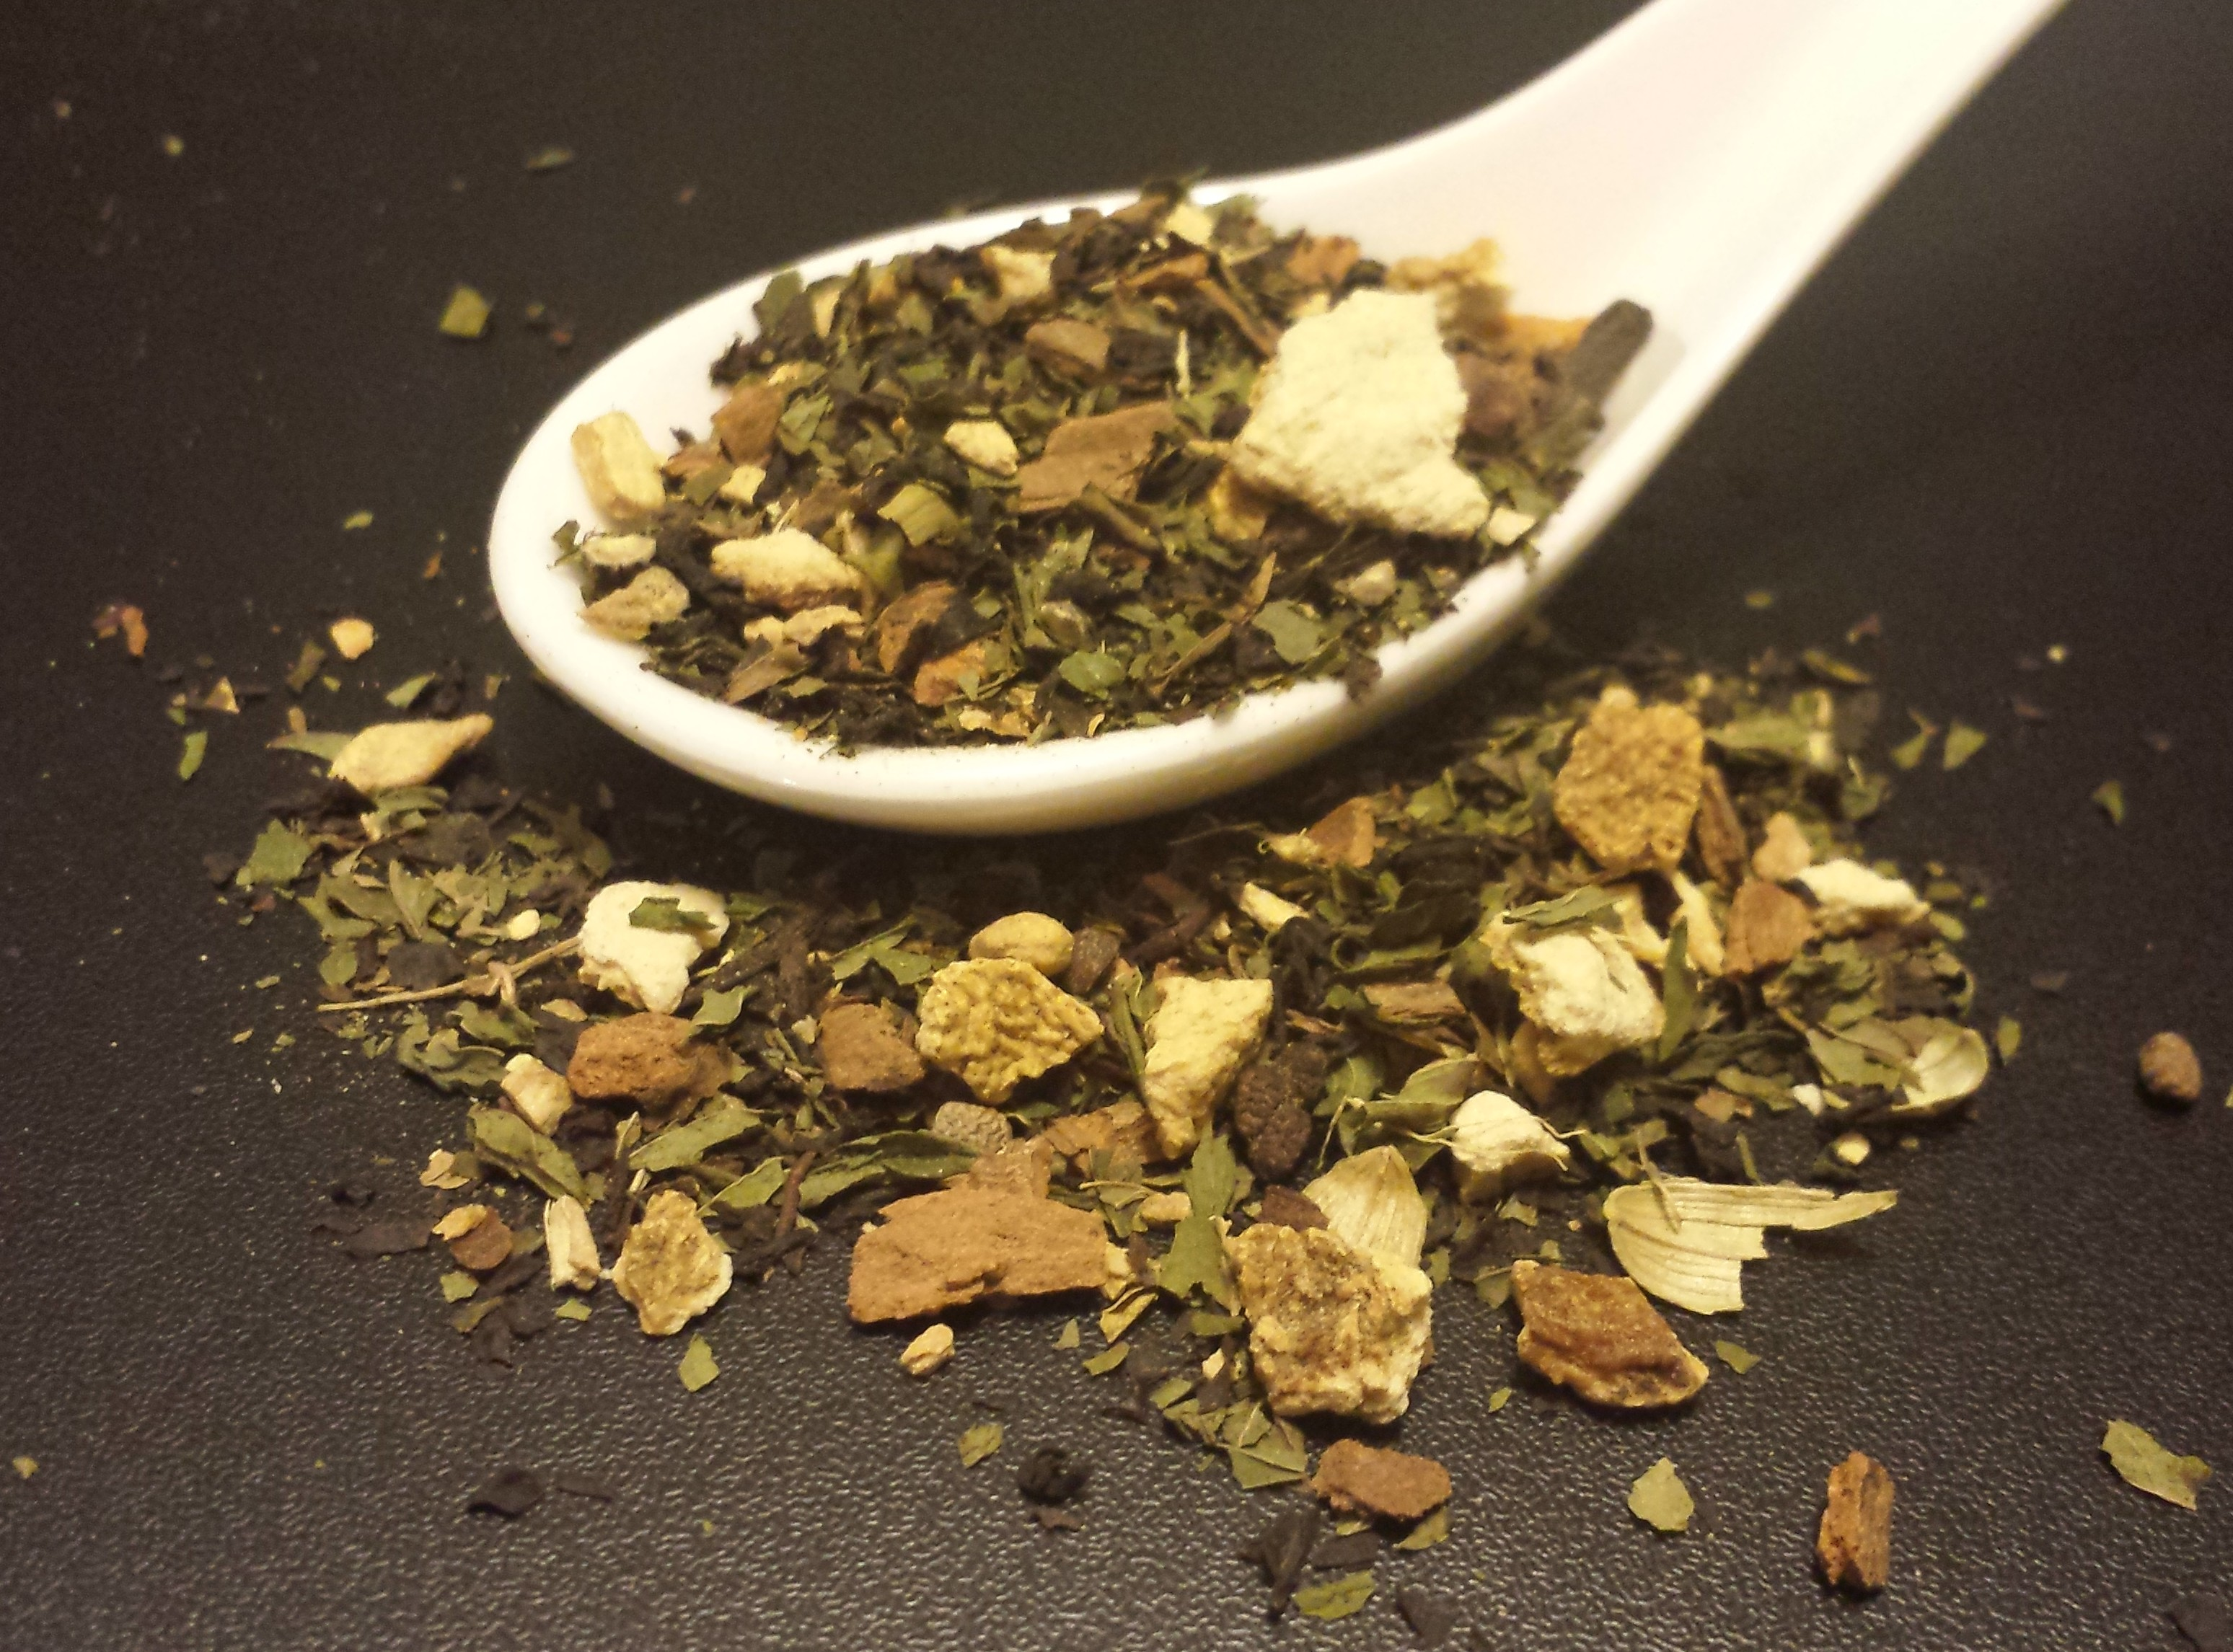 Holiday Cheer, seasonal, black tea, peppermint, cloves, cardamom, ginger, spearmint, orange peel